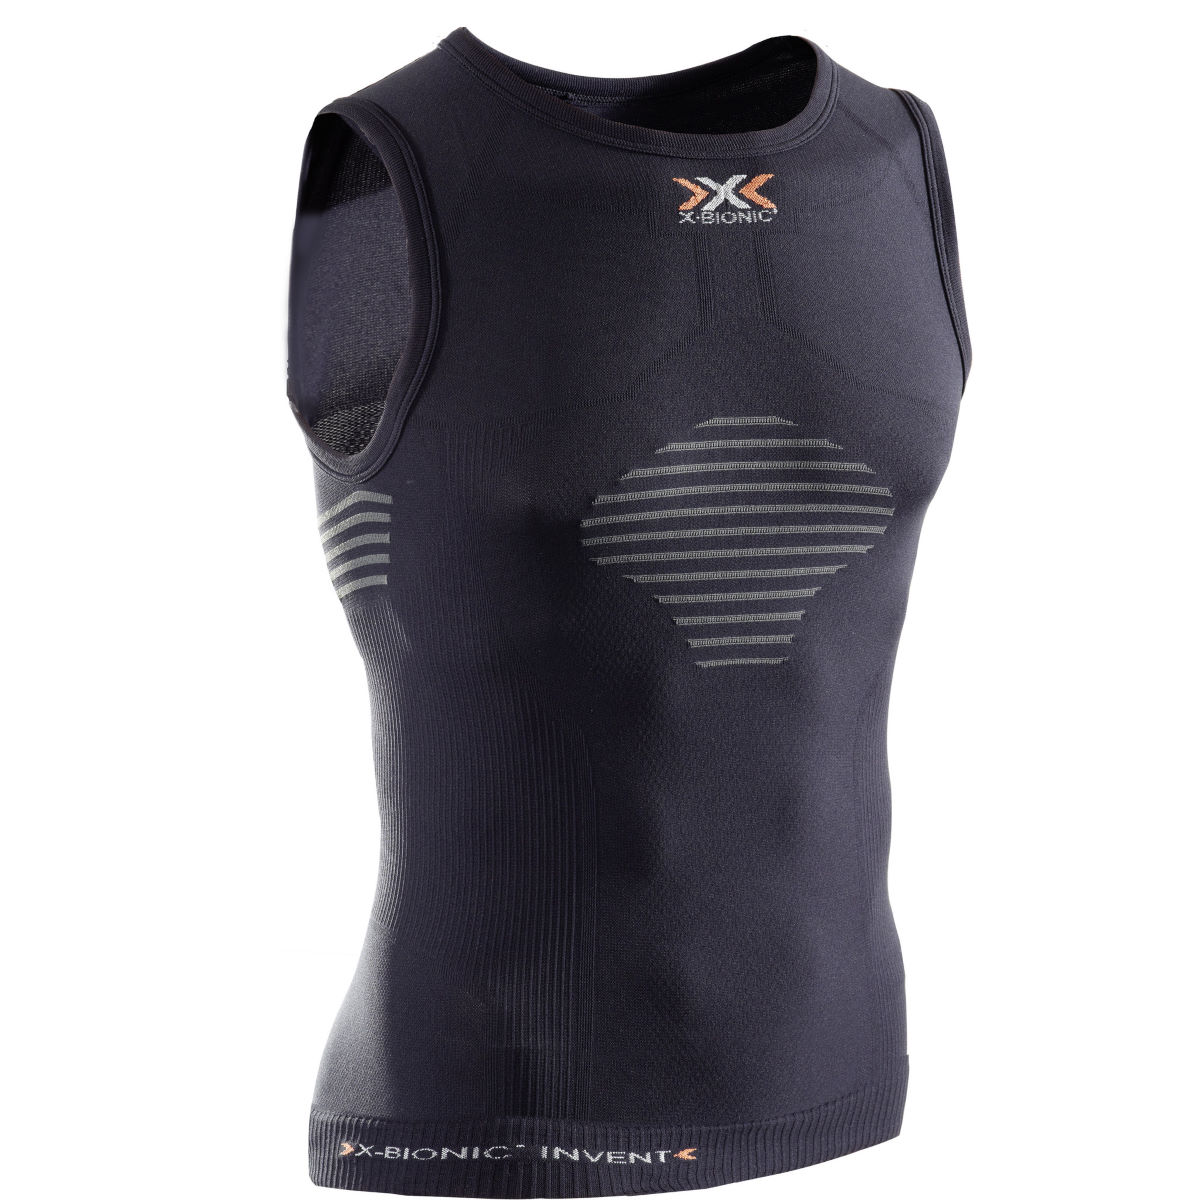 Maillot X-Bionic Invent Light UW (sans manches, blanc) - Medium Noir